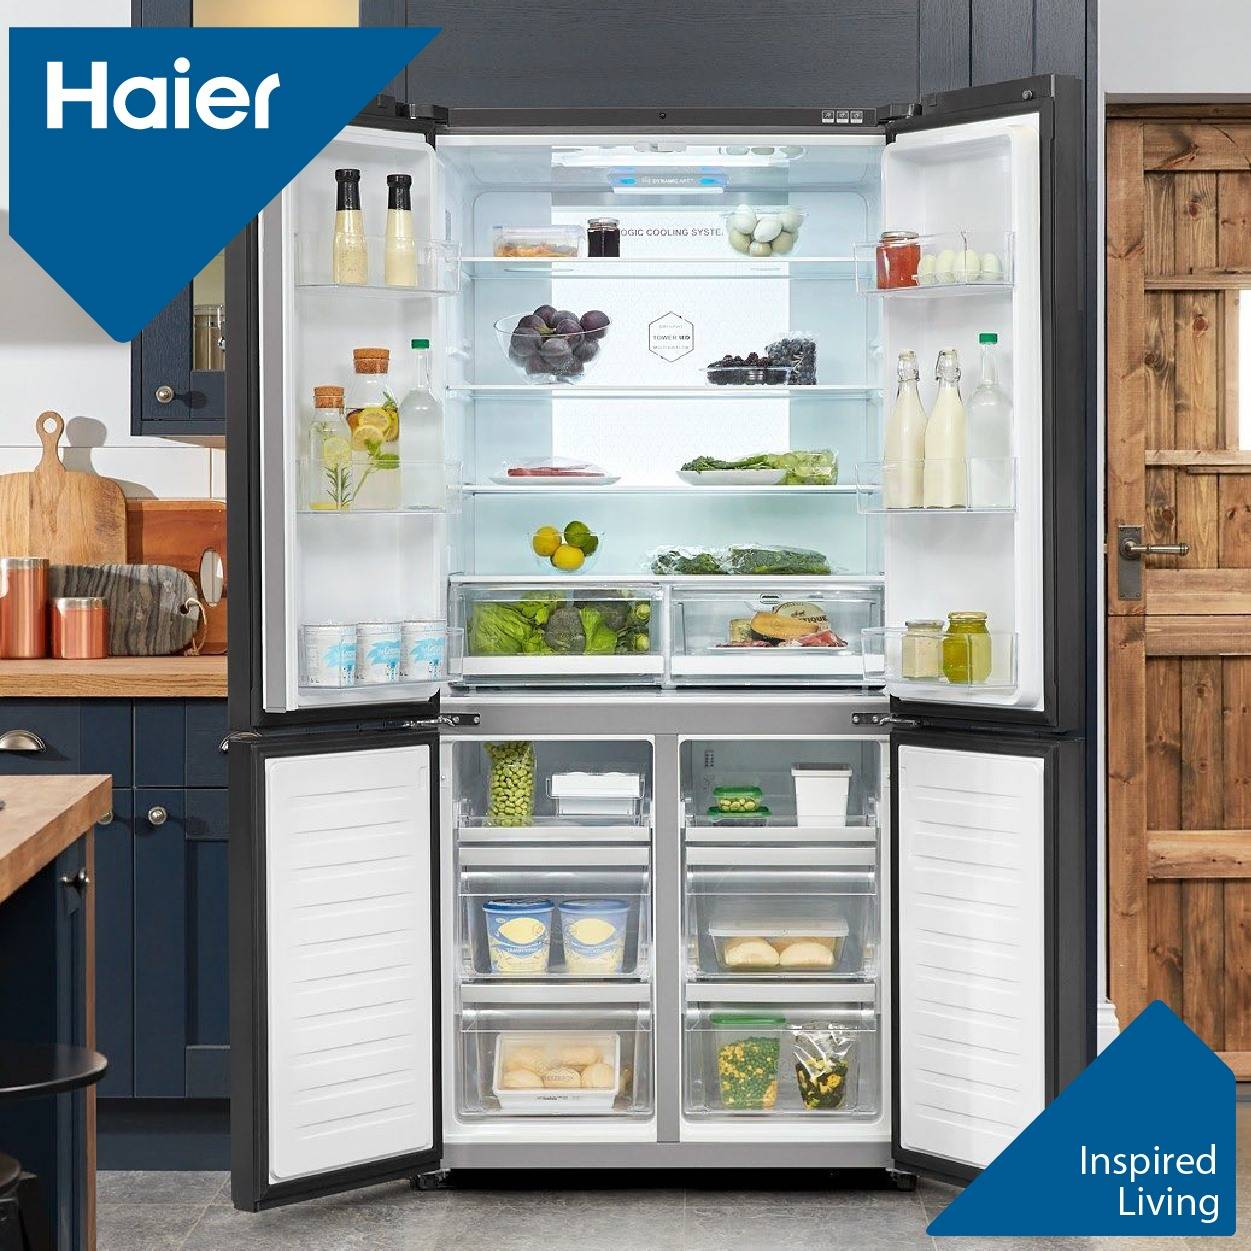 Store more & shop less often The Haier 4 Doors refrigerator offers more visibility, its side by side doors allow you to make the most of your space! Available in Black and Stainless Steel! 😍